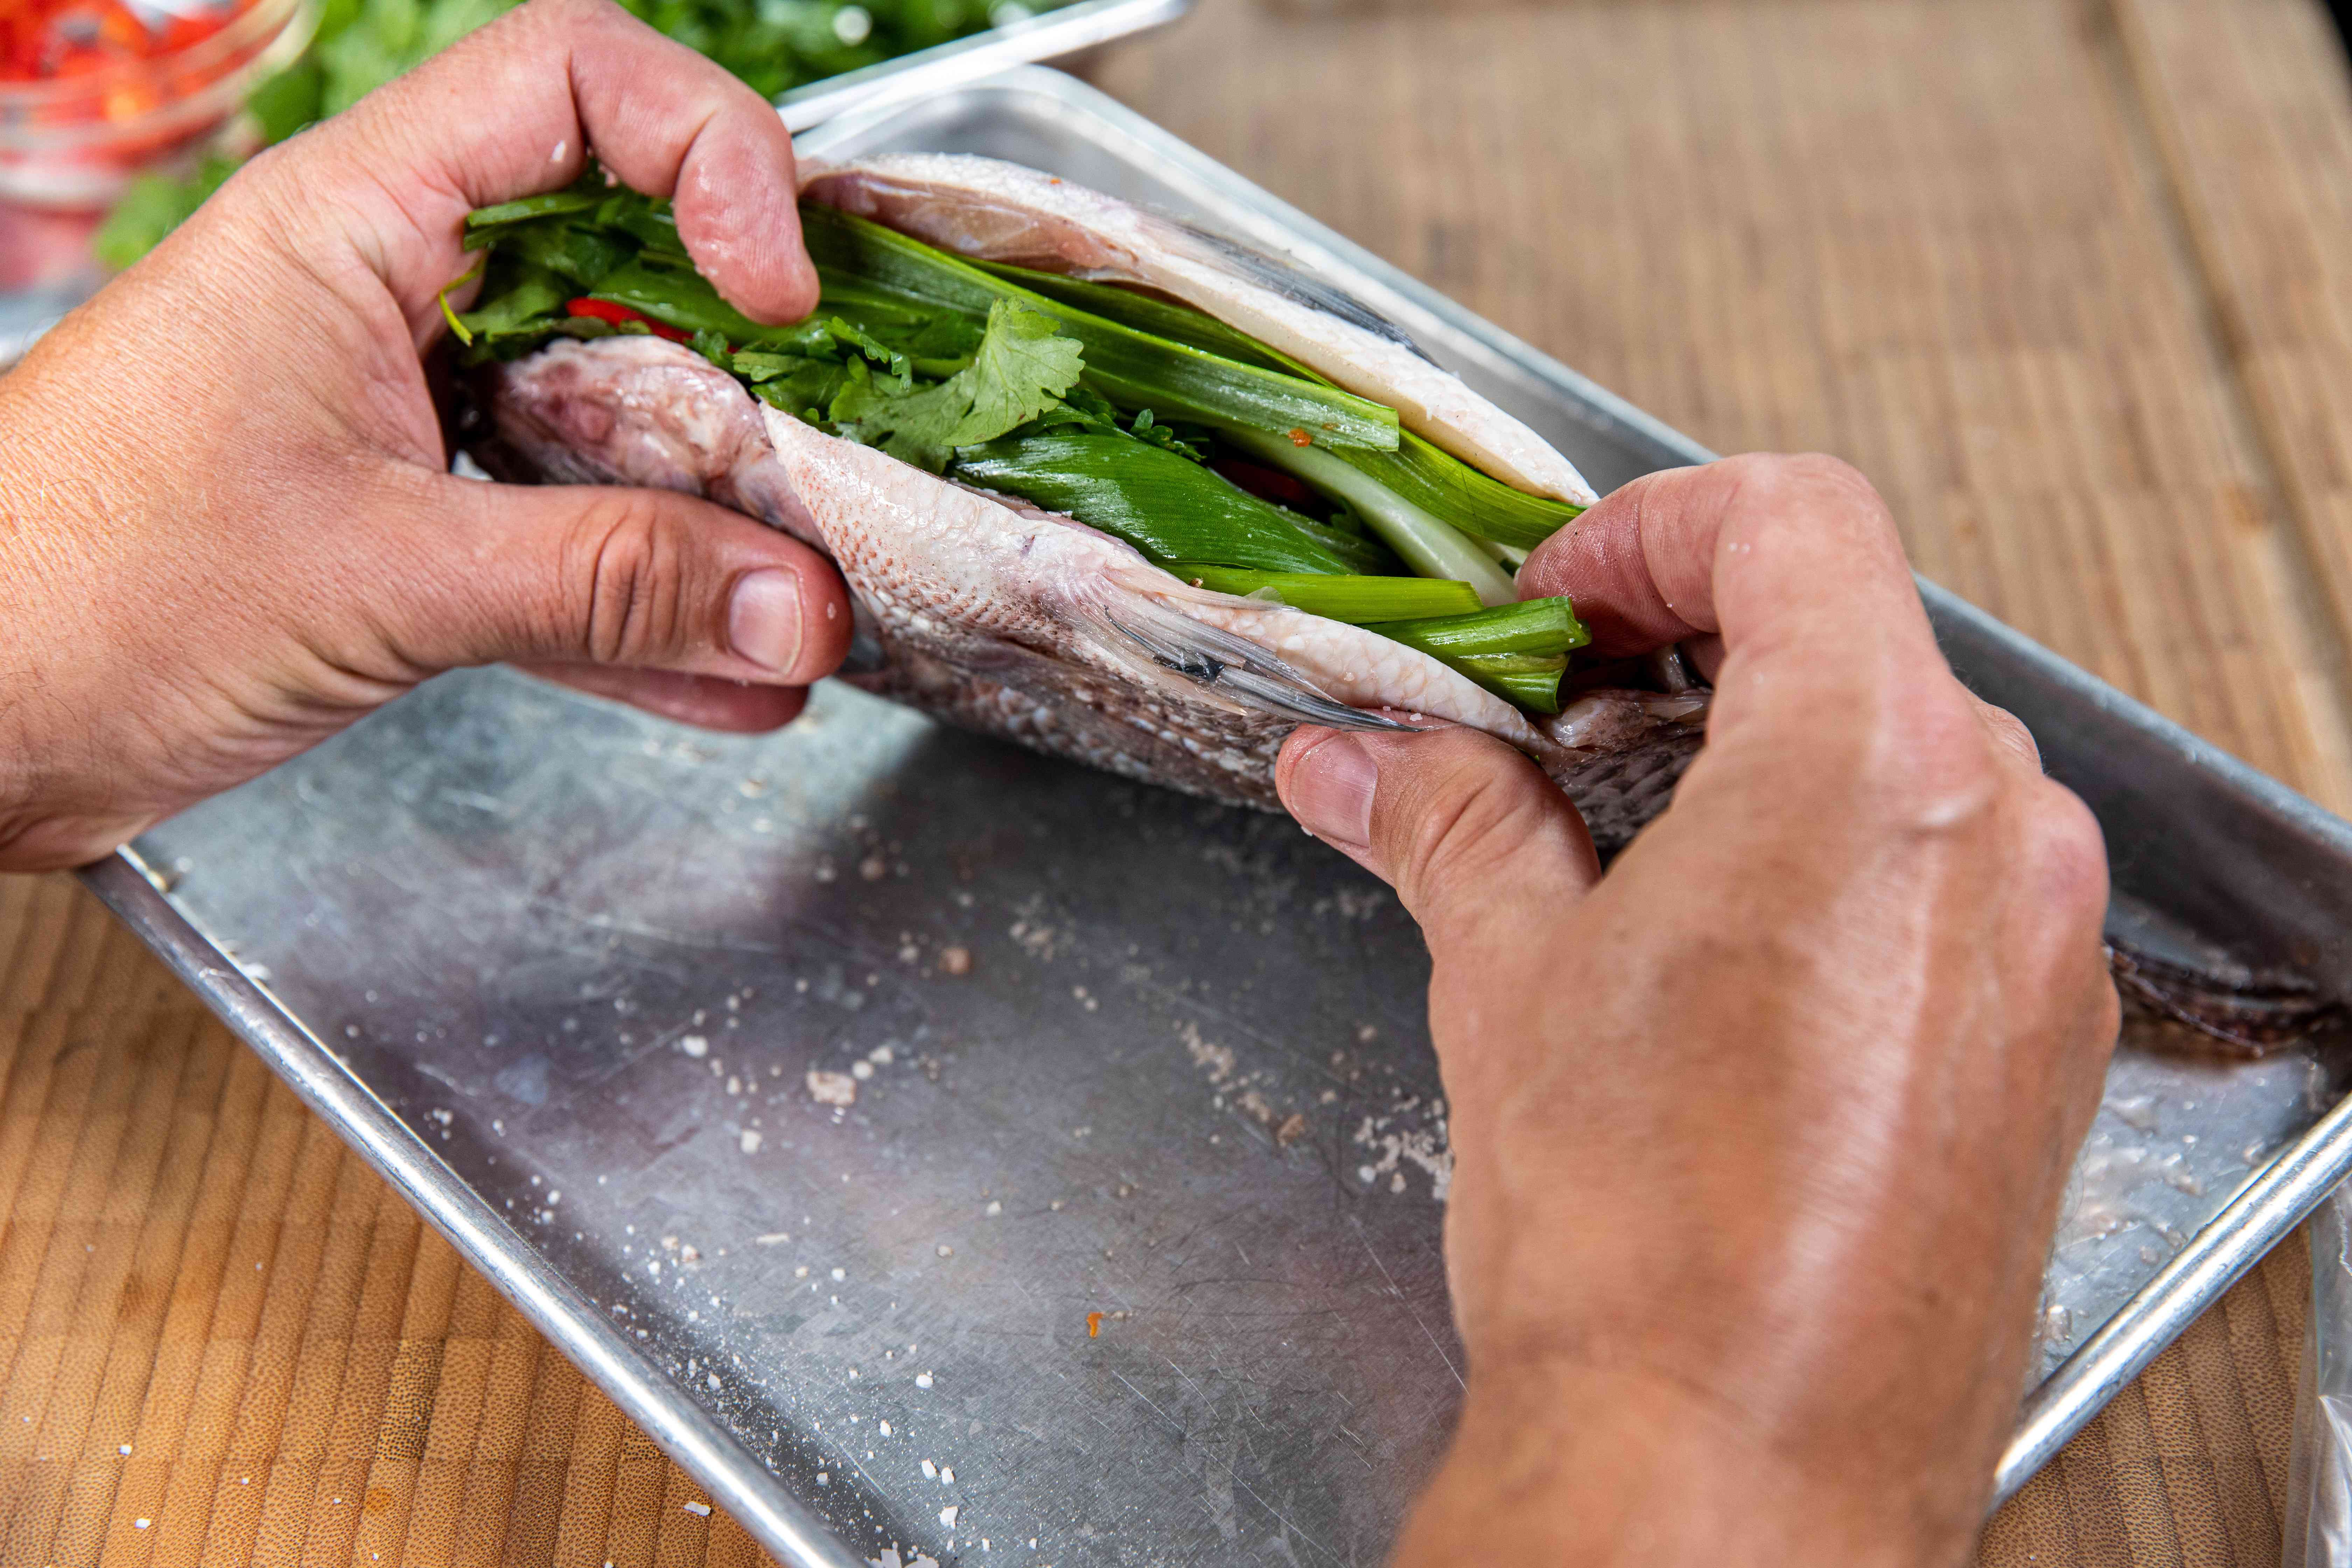 Filling the fish cavity with herbs for a grilled tilapia recipe.